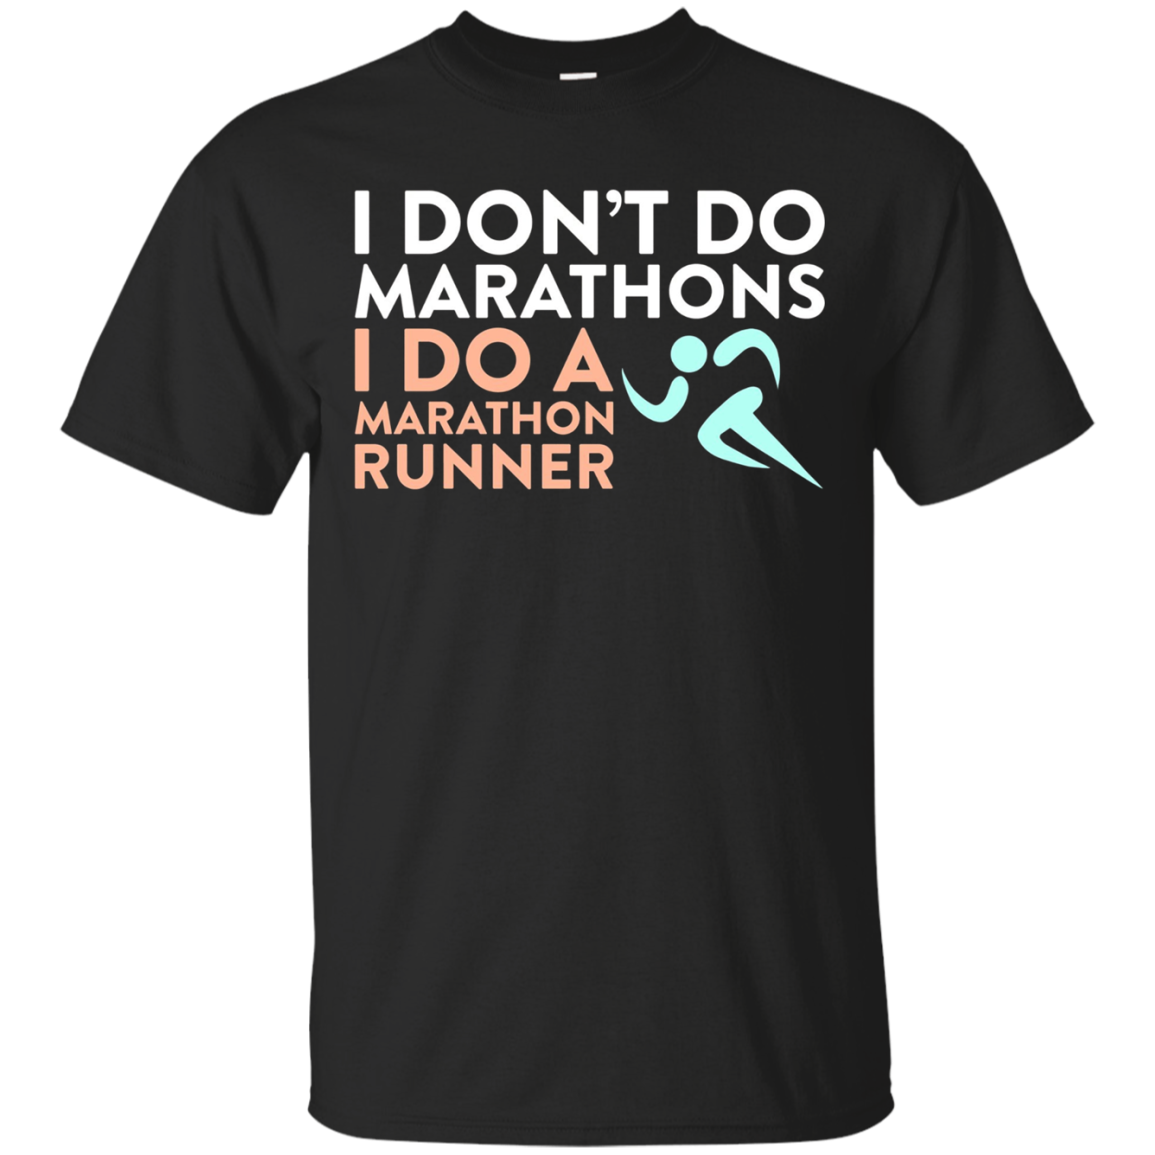 Funny Don't Do Marathons I Do a Marathon Runner T-shirt